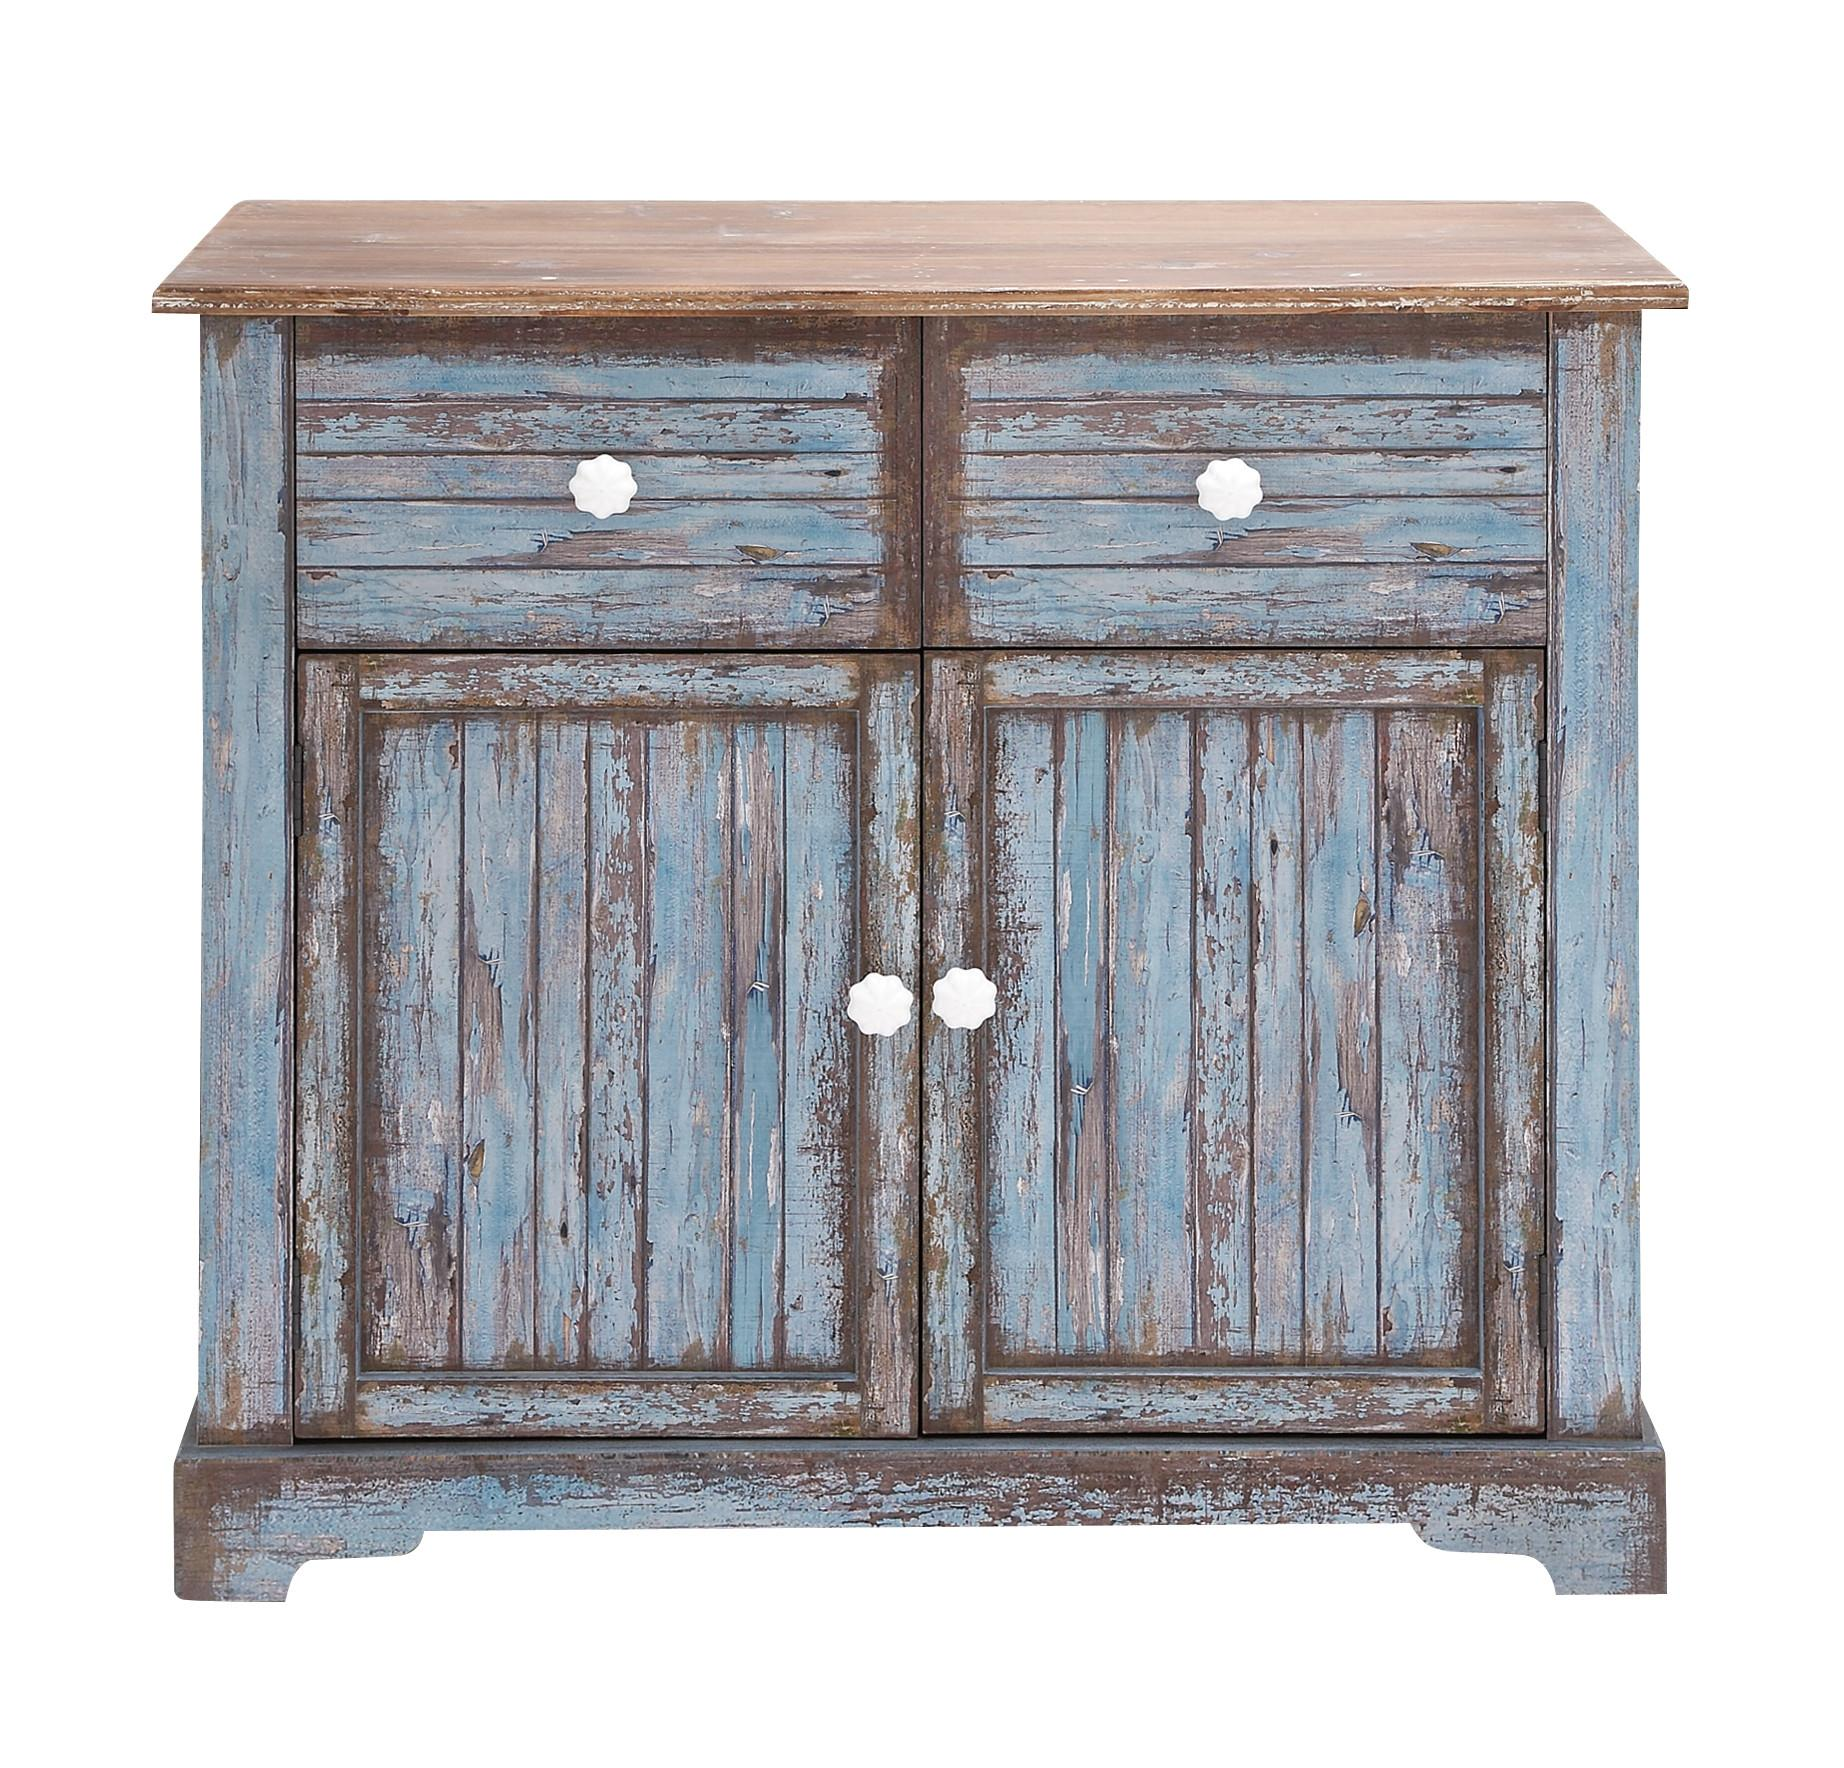 Painted Furniture Shabby Chic